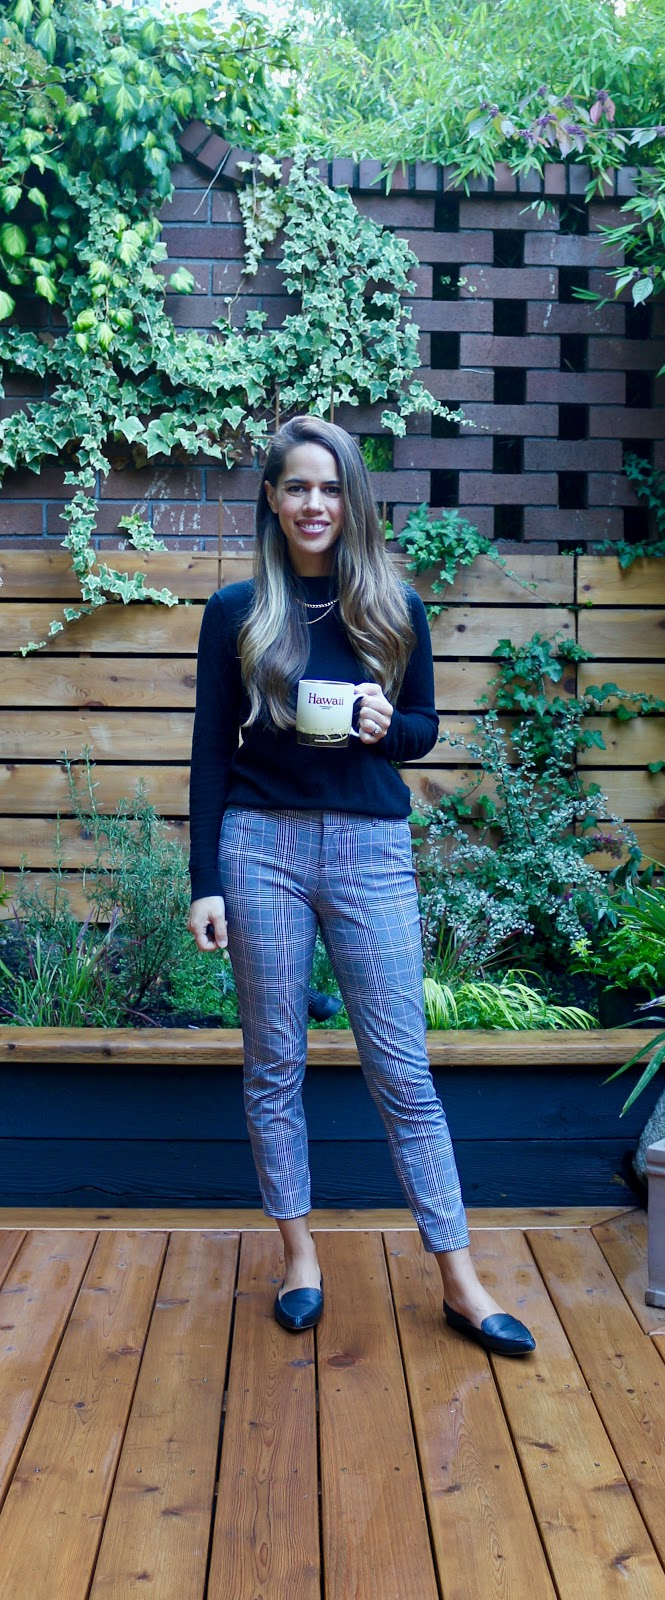 Jules in Flats - Plaid Ankle Pants (Business Casual Workwear on a Budget)